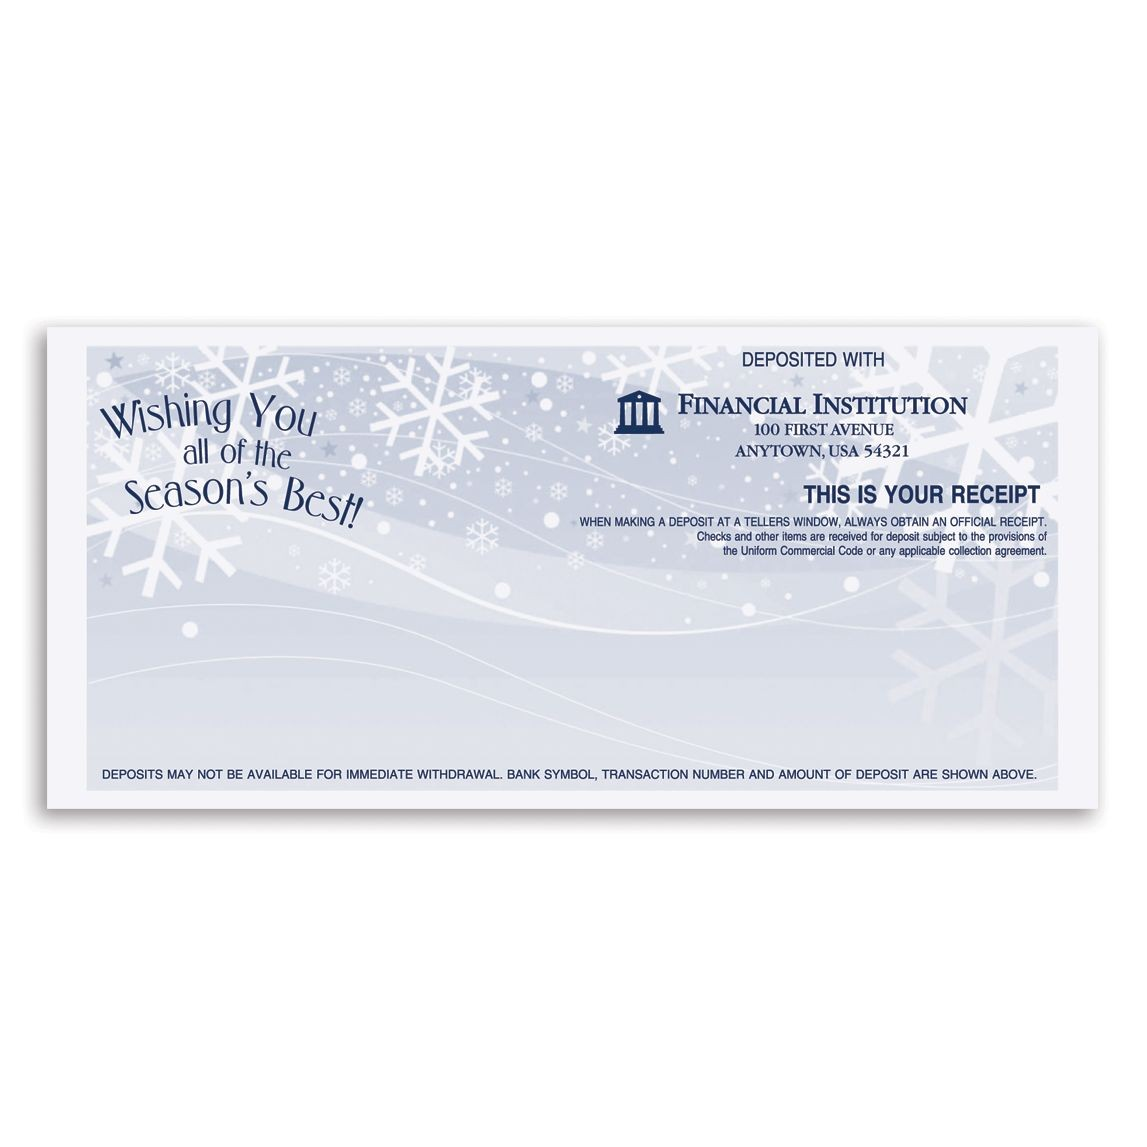 Wishing You all of the Season's Best! Teller Receipt